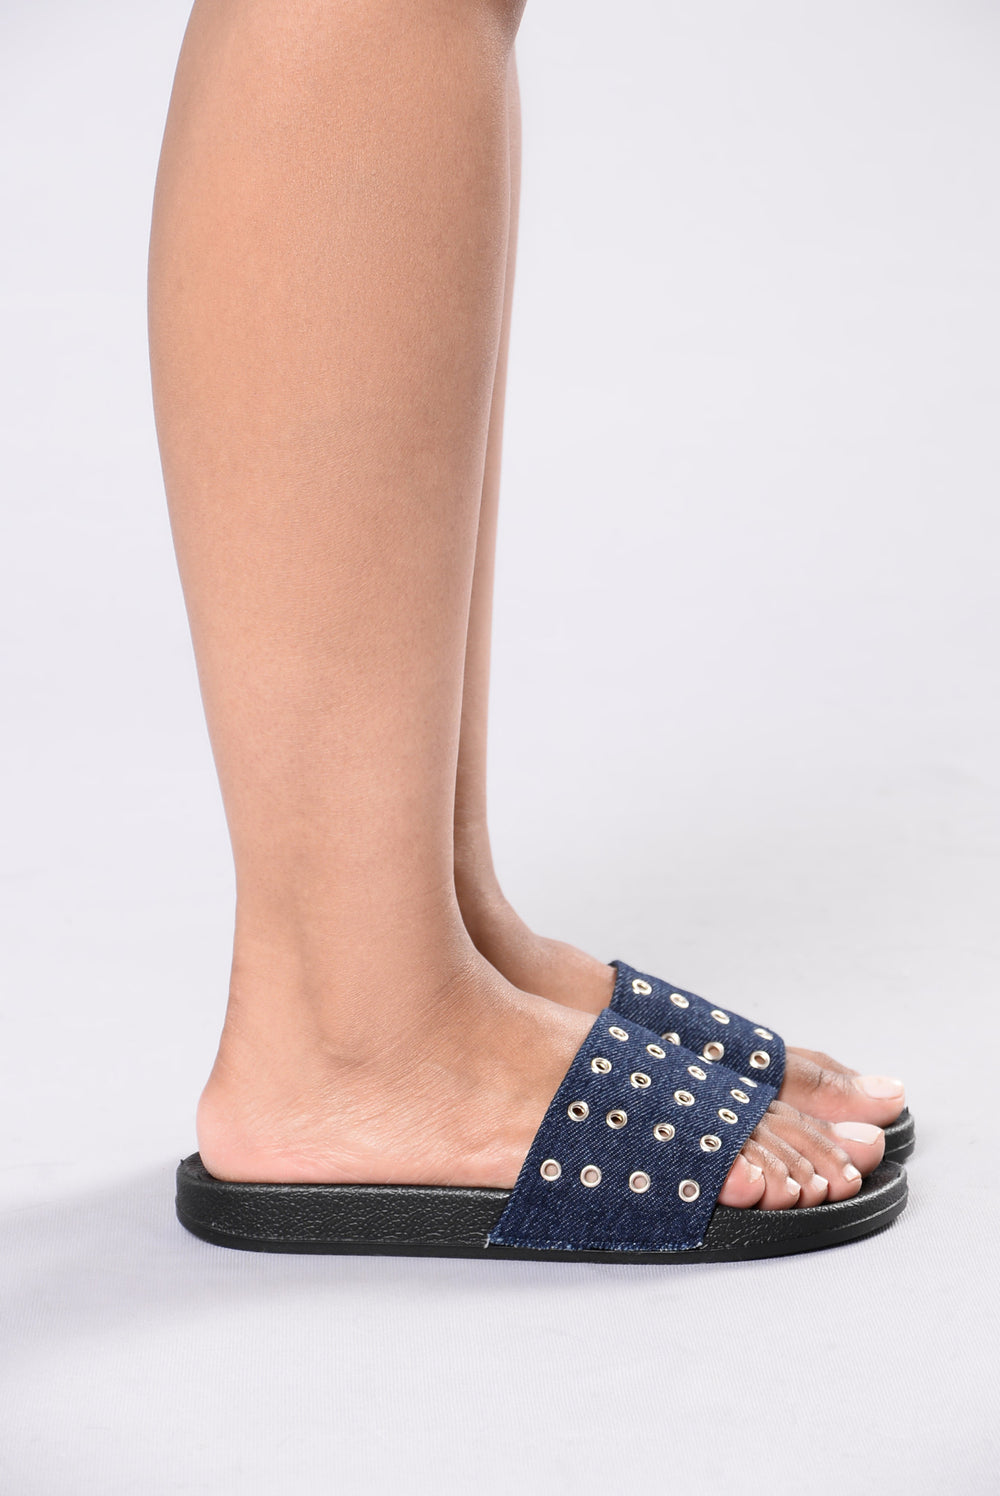 Holey Smokes Sandal - Denim